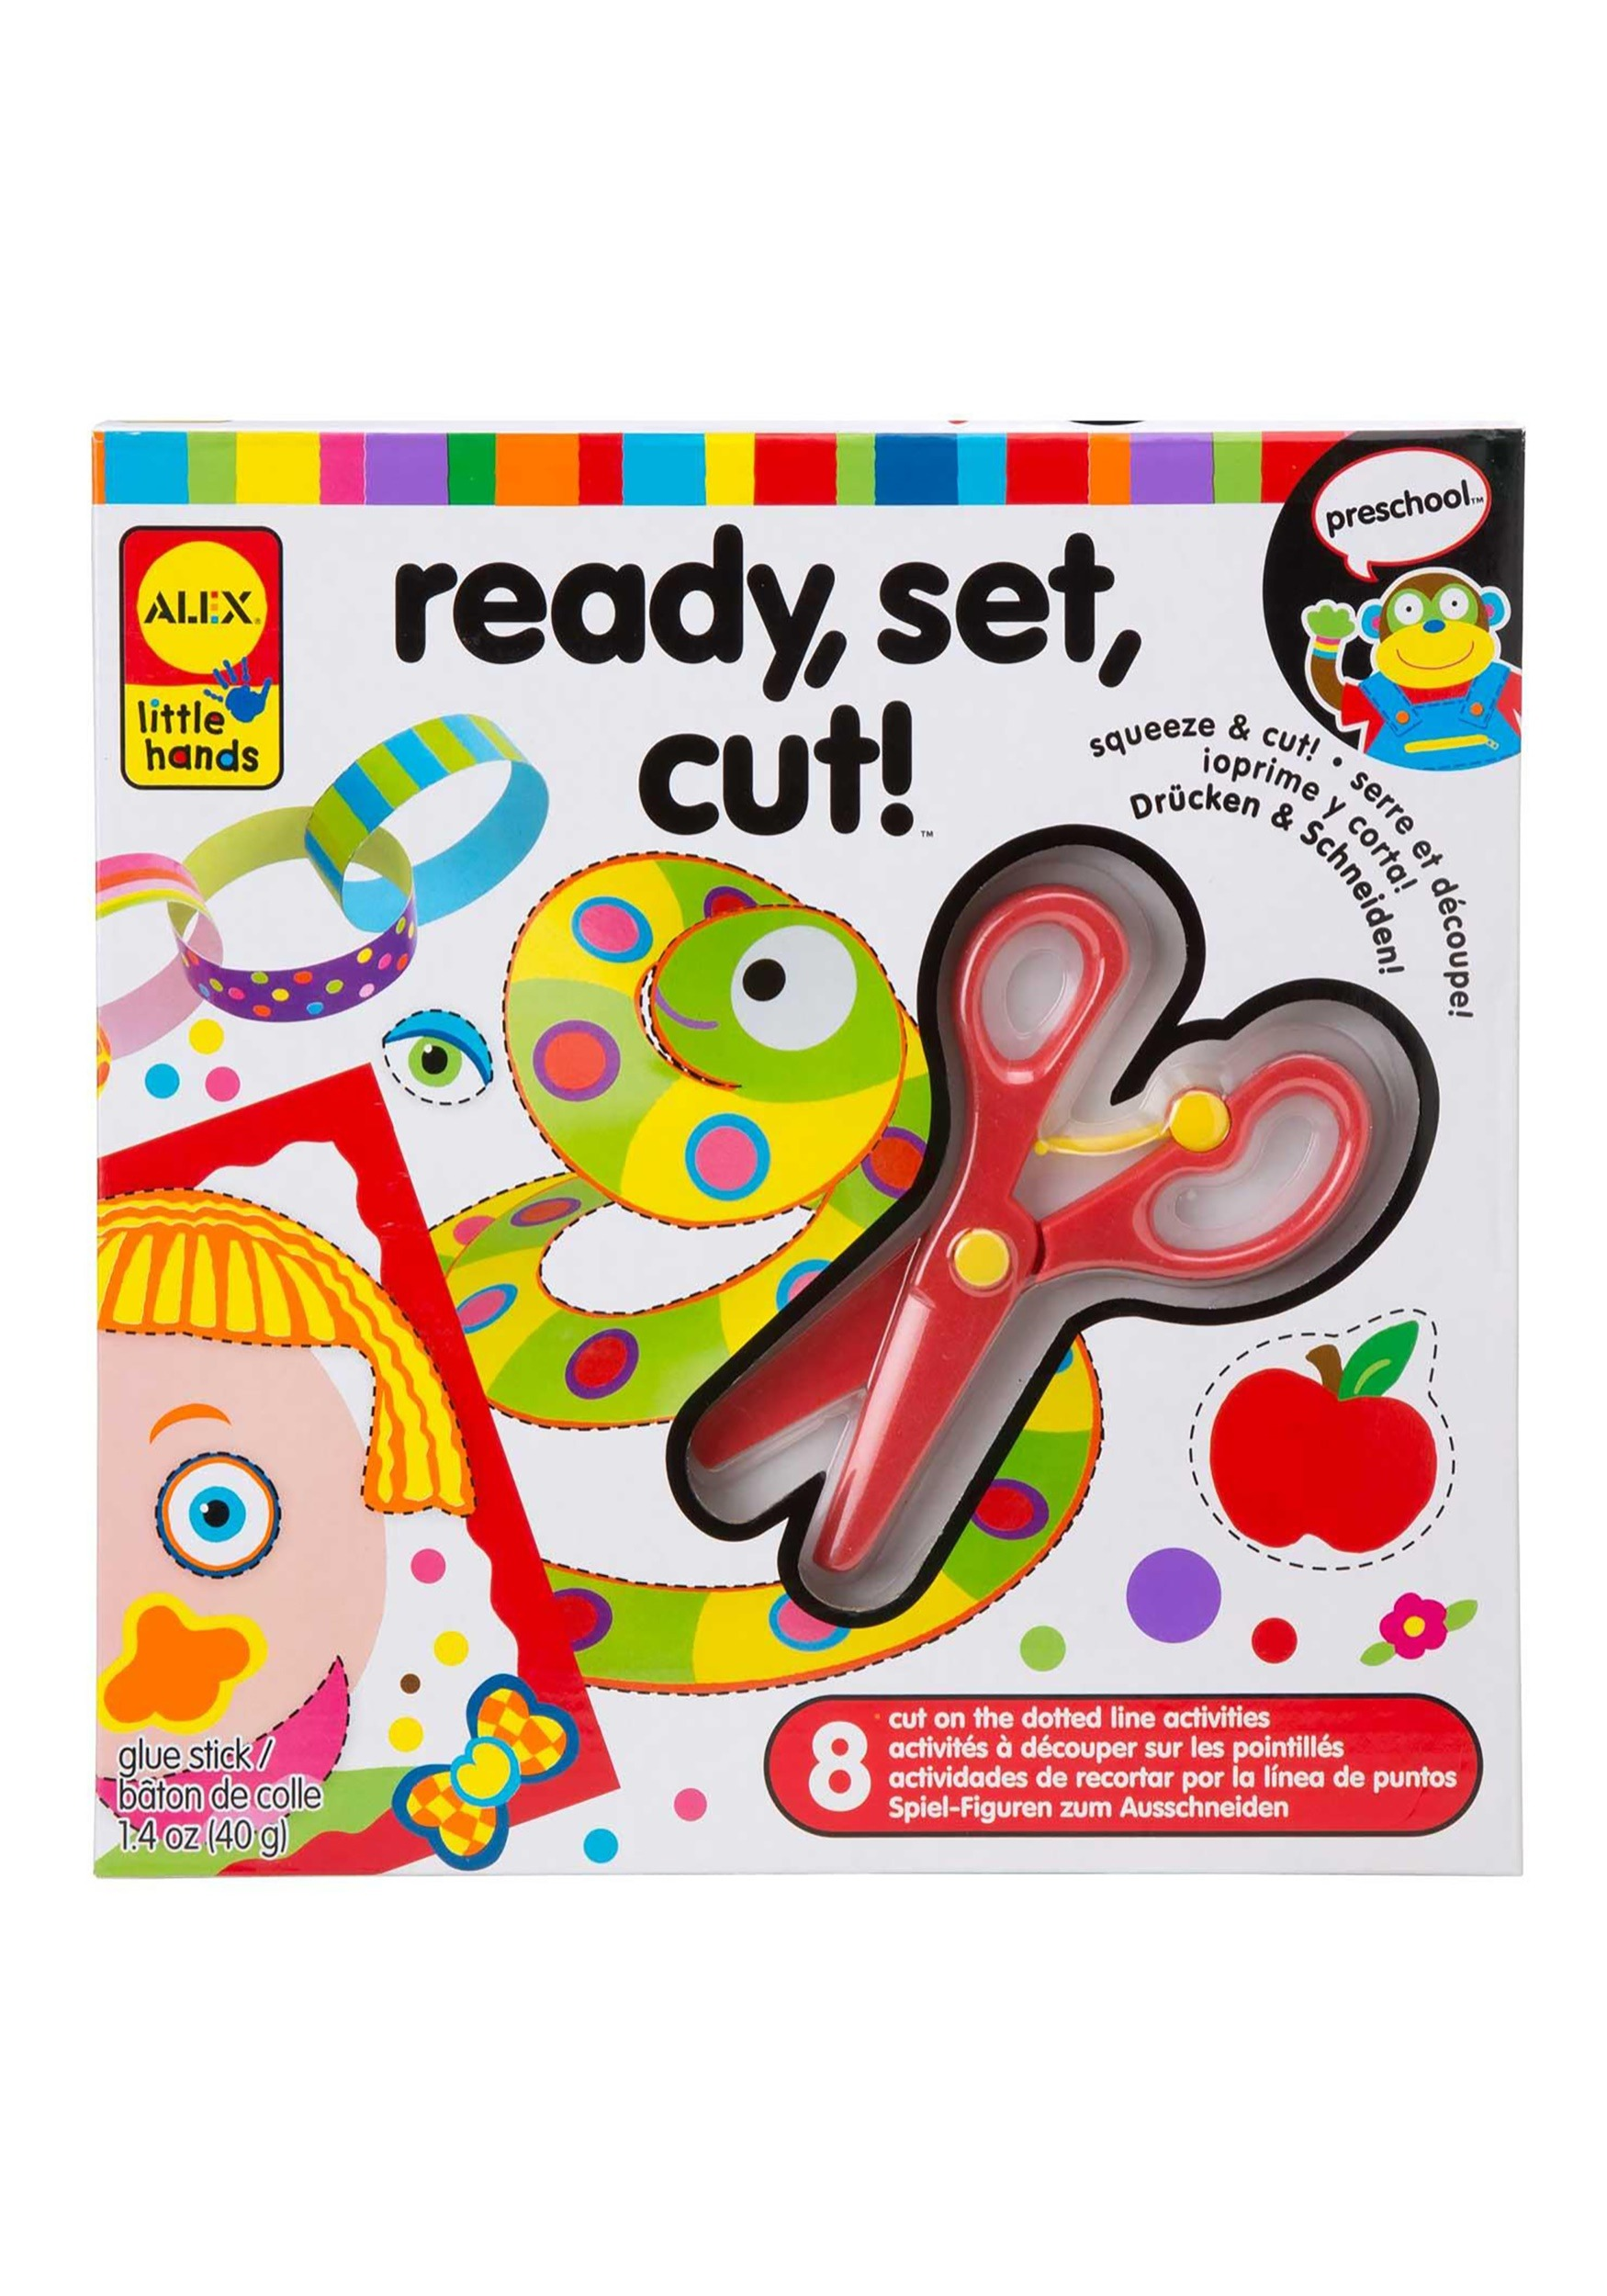 Discover_Ready,_Set,_Cut_Toy_Craft_Kit